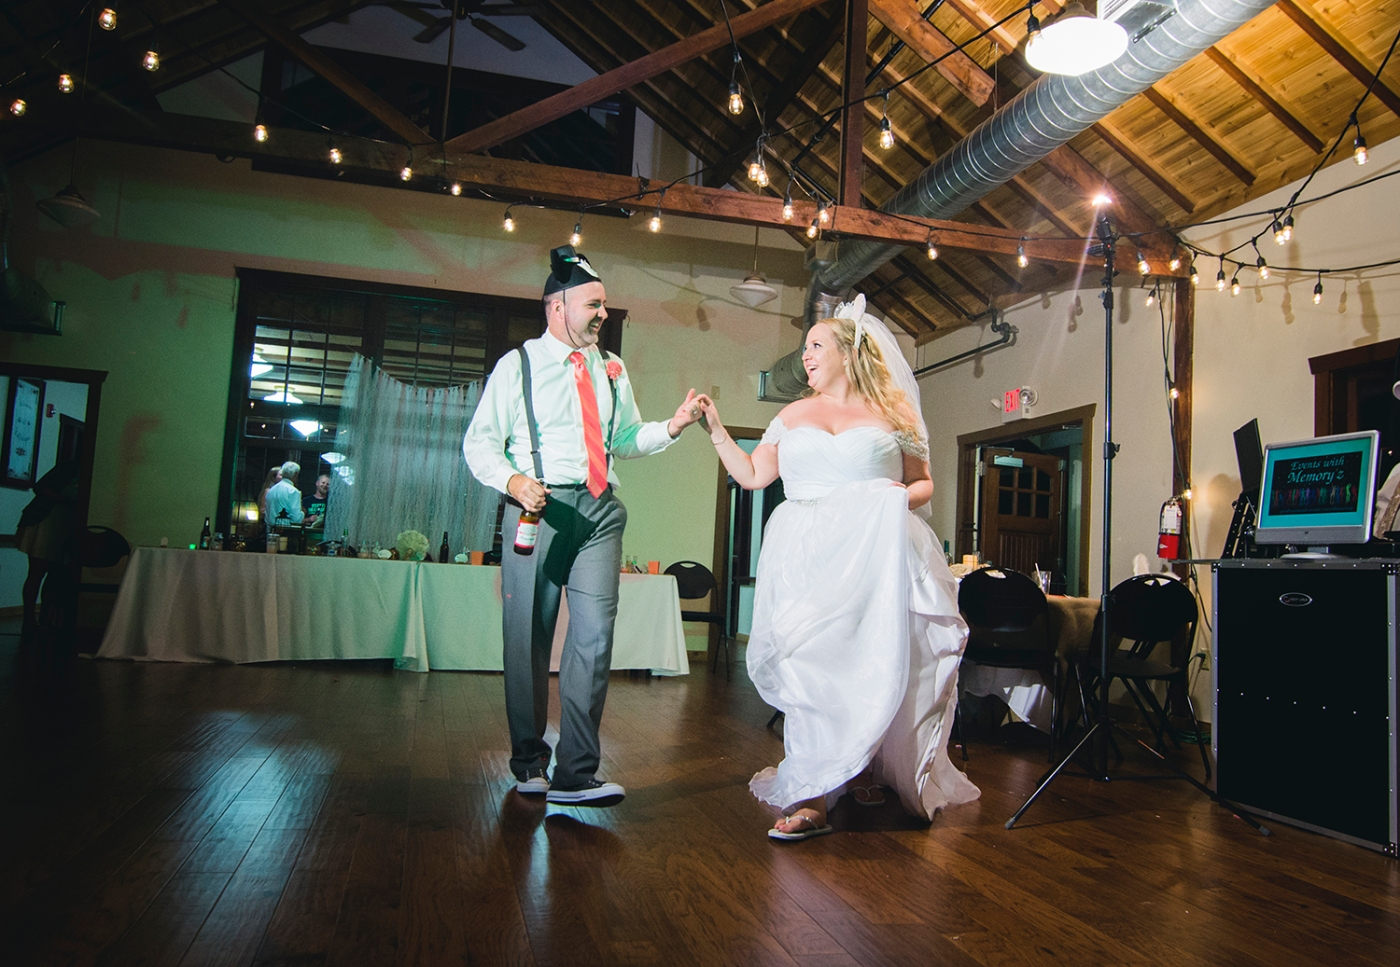 Jane_S_Seattle_photography_Kadie_and_Steve_2016_Des_Moines_Marina_Wedding_DSC_2878